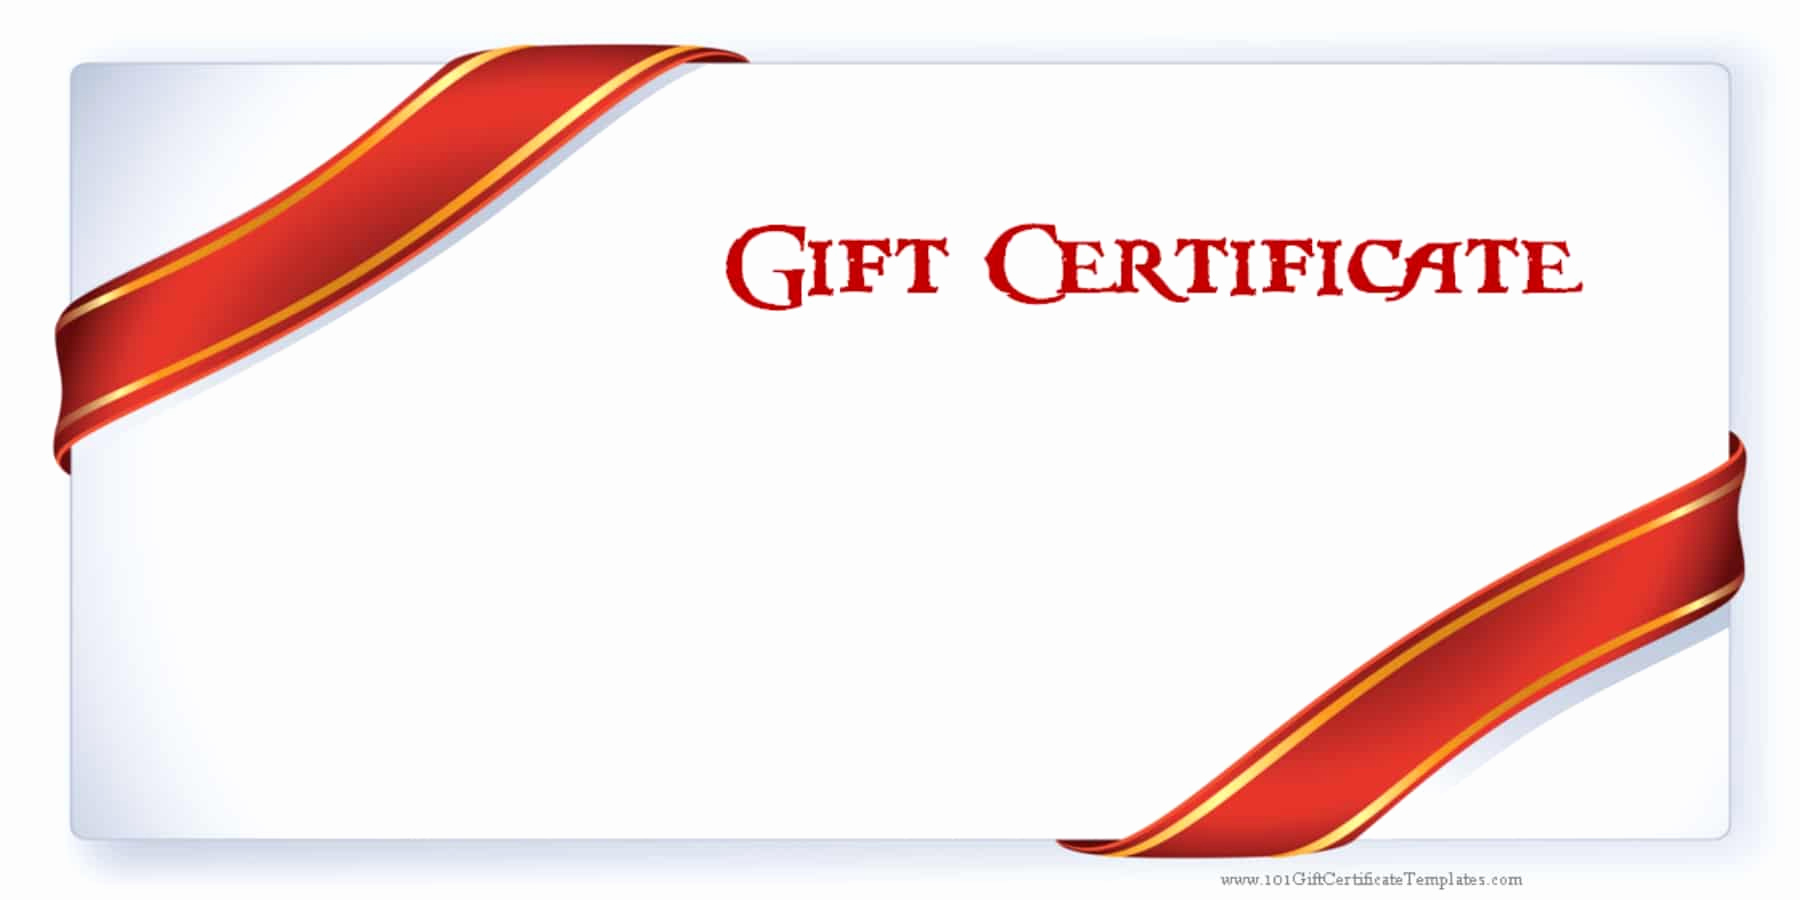 Template for Gift Certificate Unique Printable Gift Certificate Templates